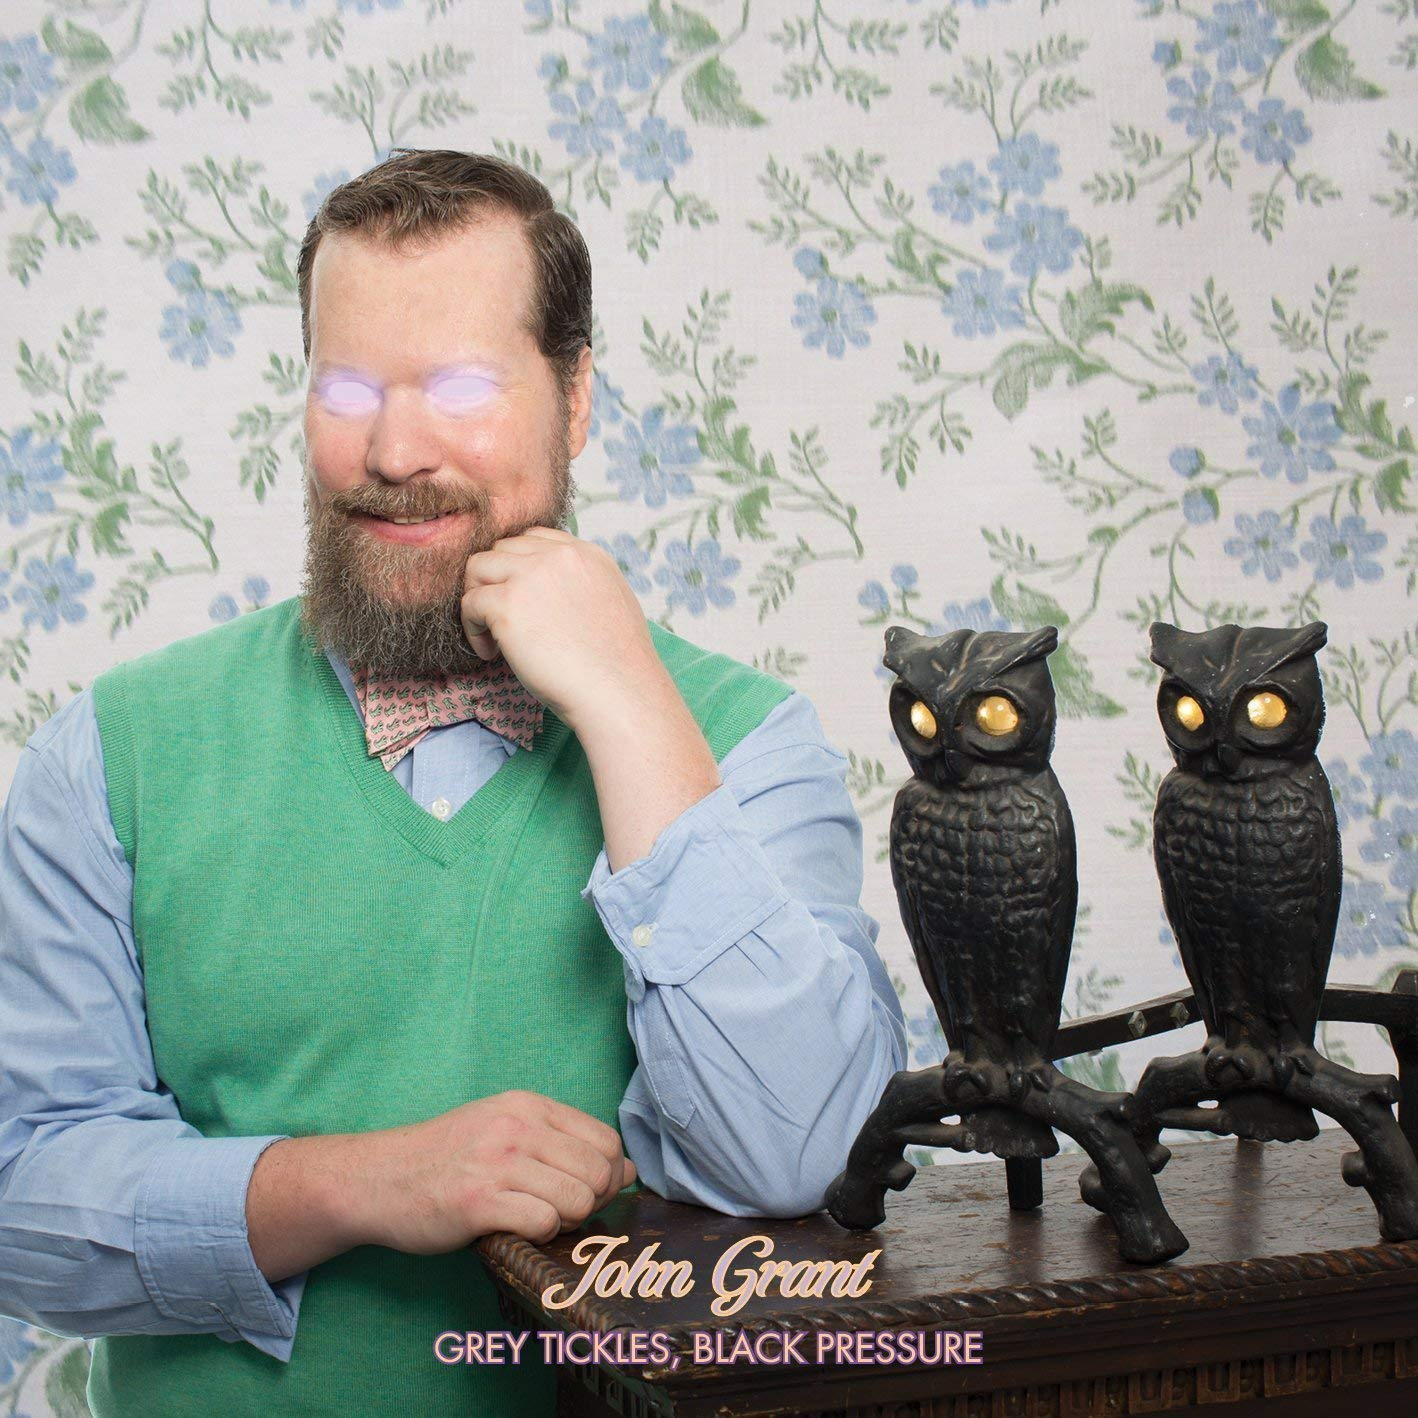 Джон Грант John Grant. Grey Tickles, Black Pressure (2 LP) плеер sony nw a35hn